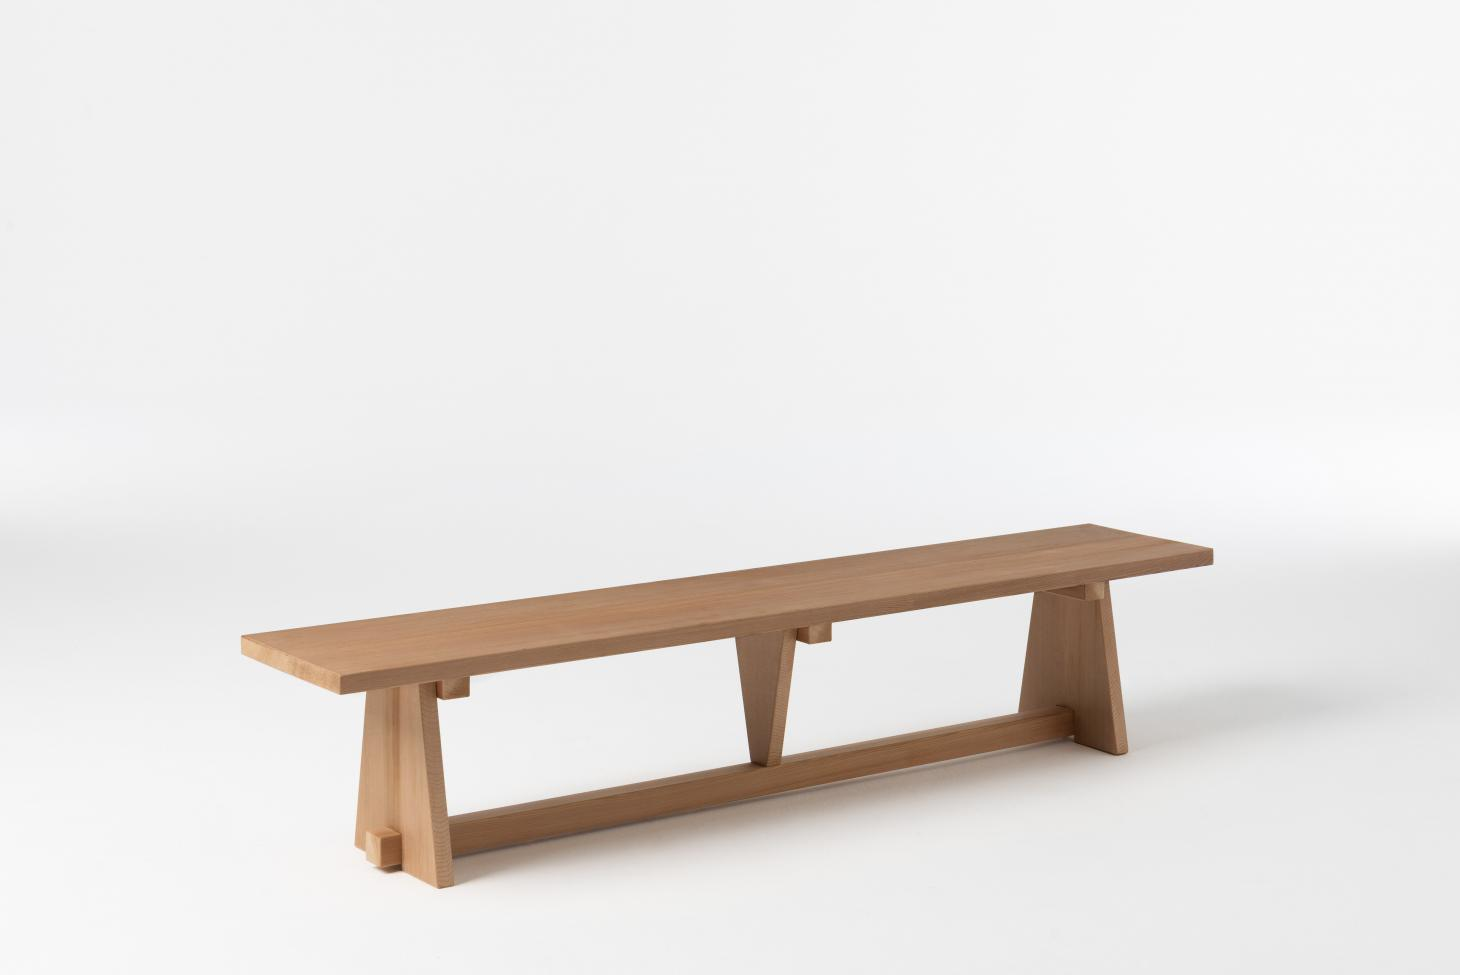 Long gym bench in wood